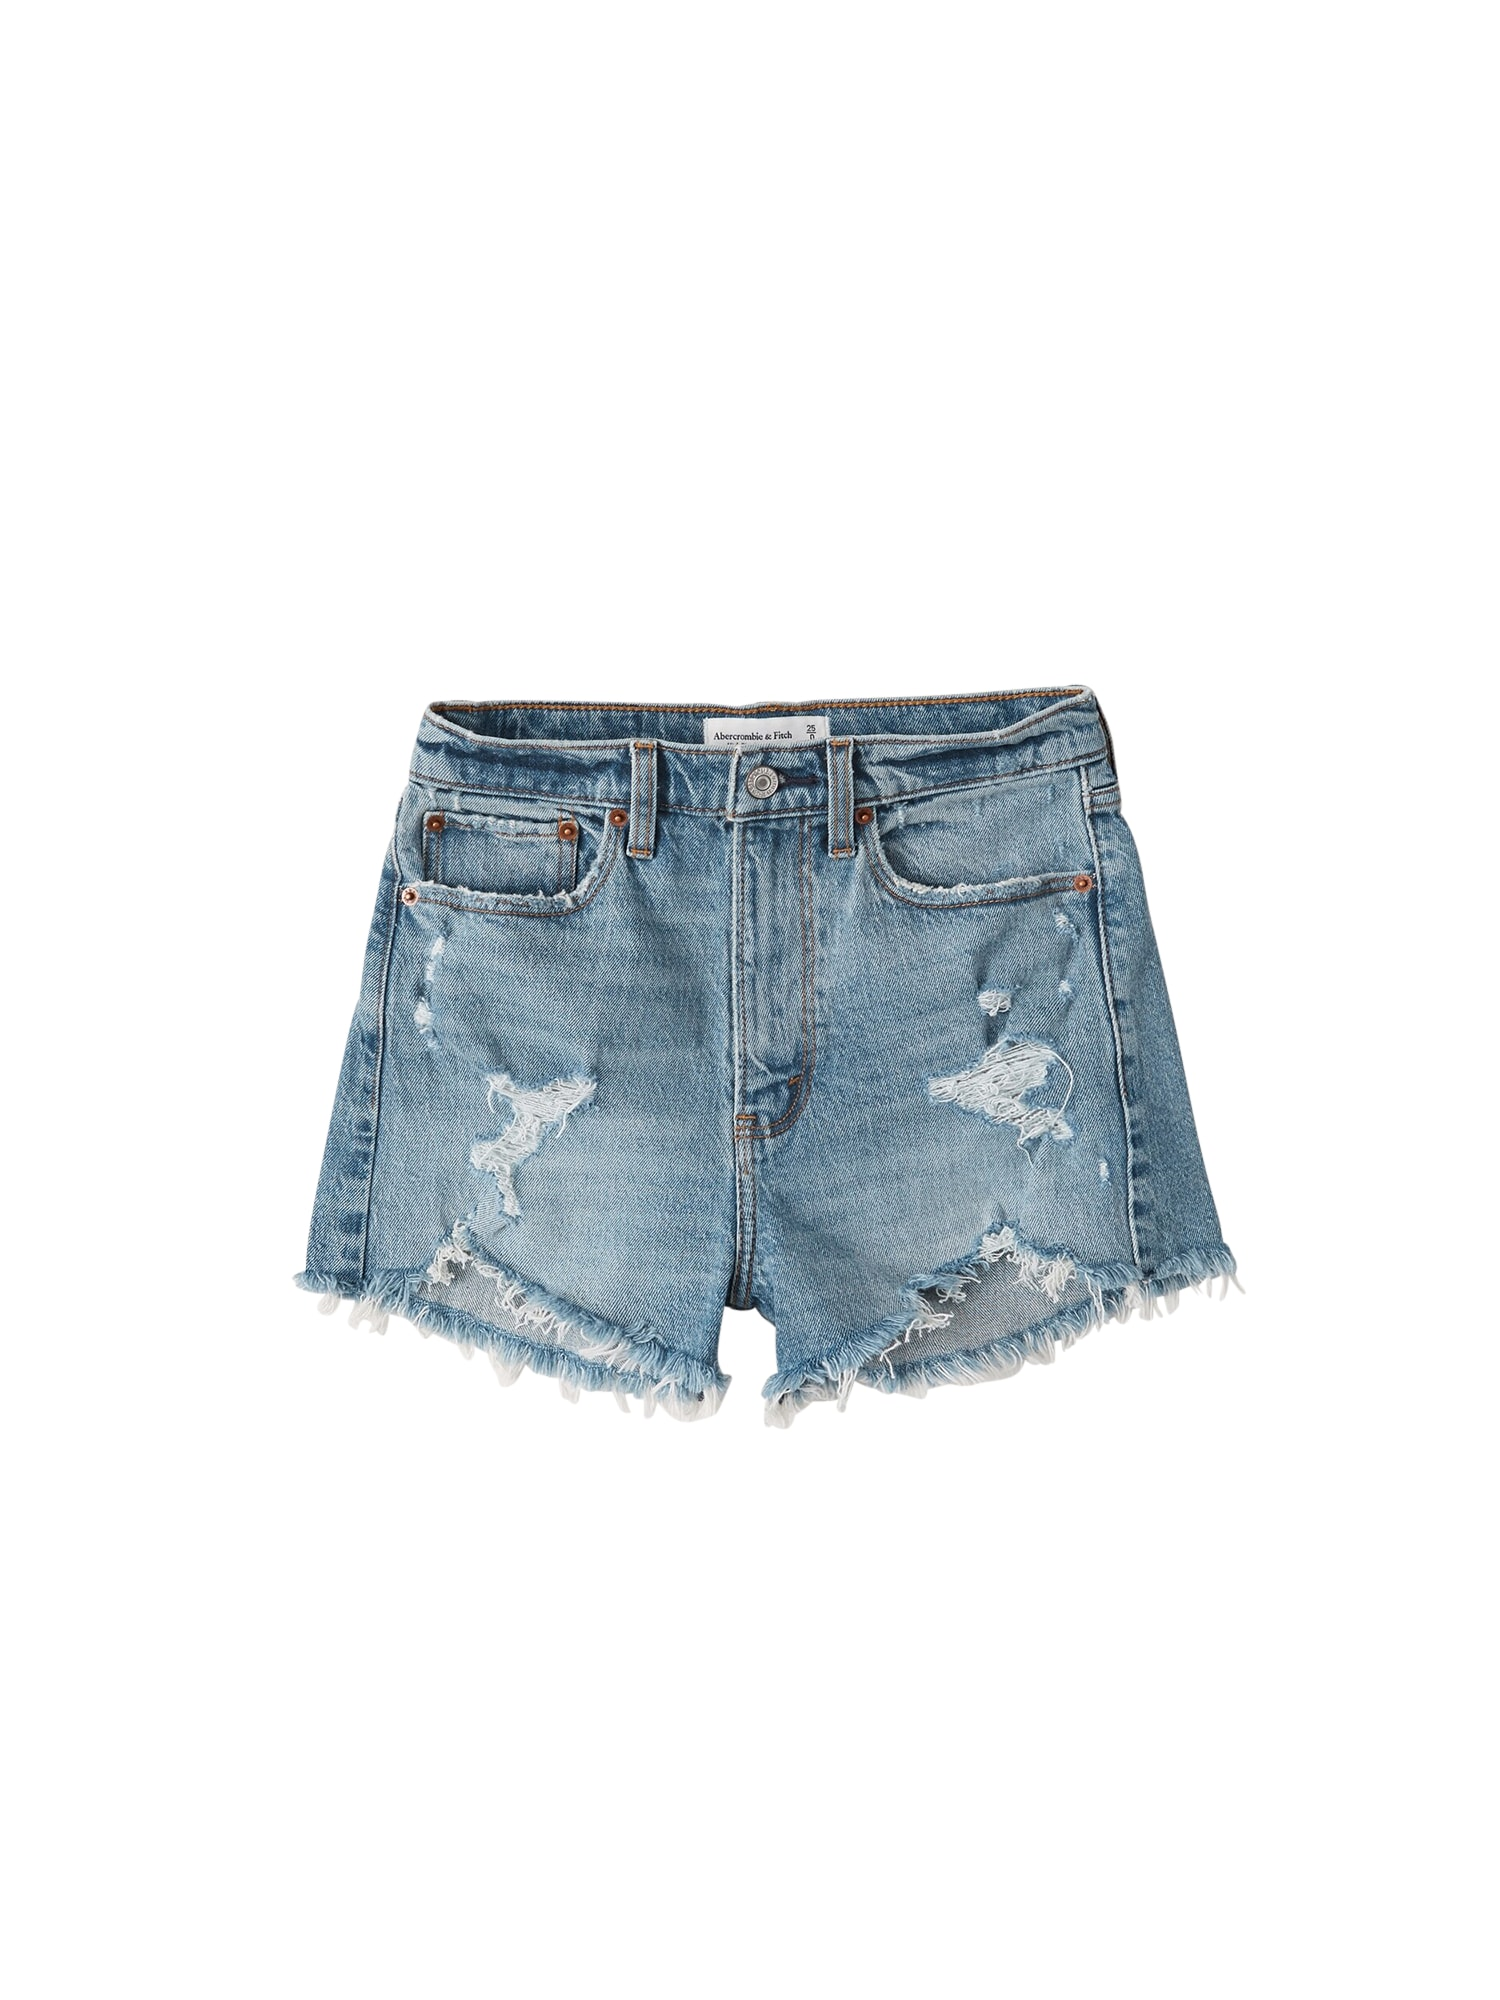 Abercrombie & Fitch Džinsai 'HIGH RISE DENIM SHORTS' tamsiai (džinso) mėlyna